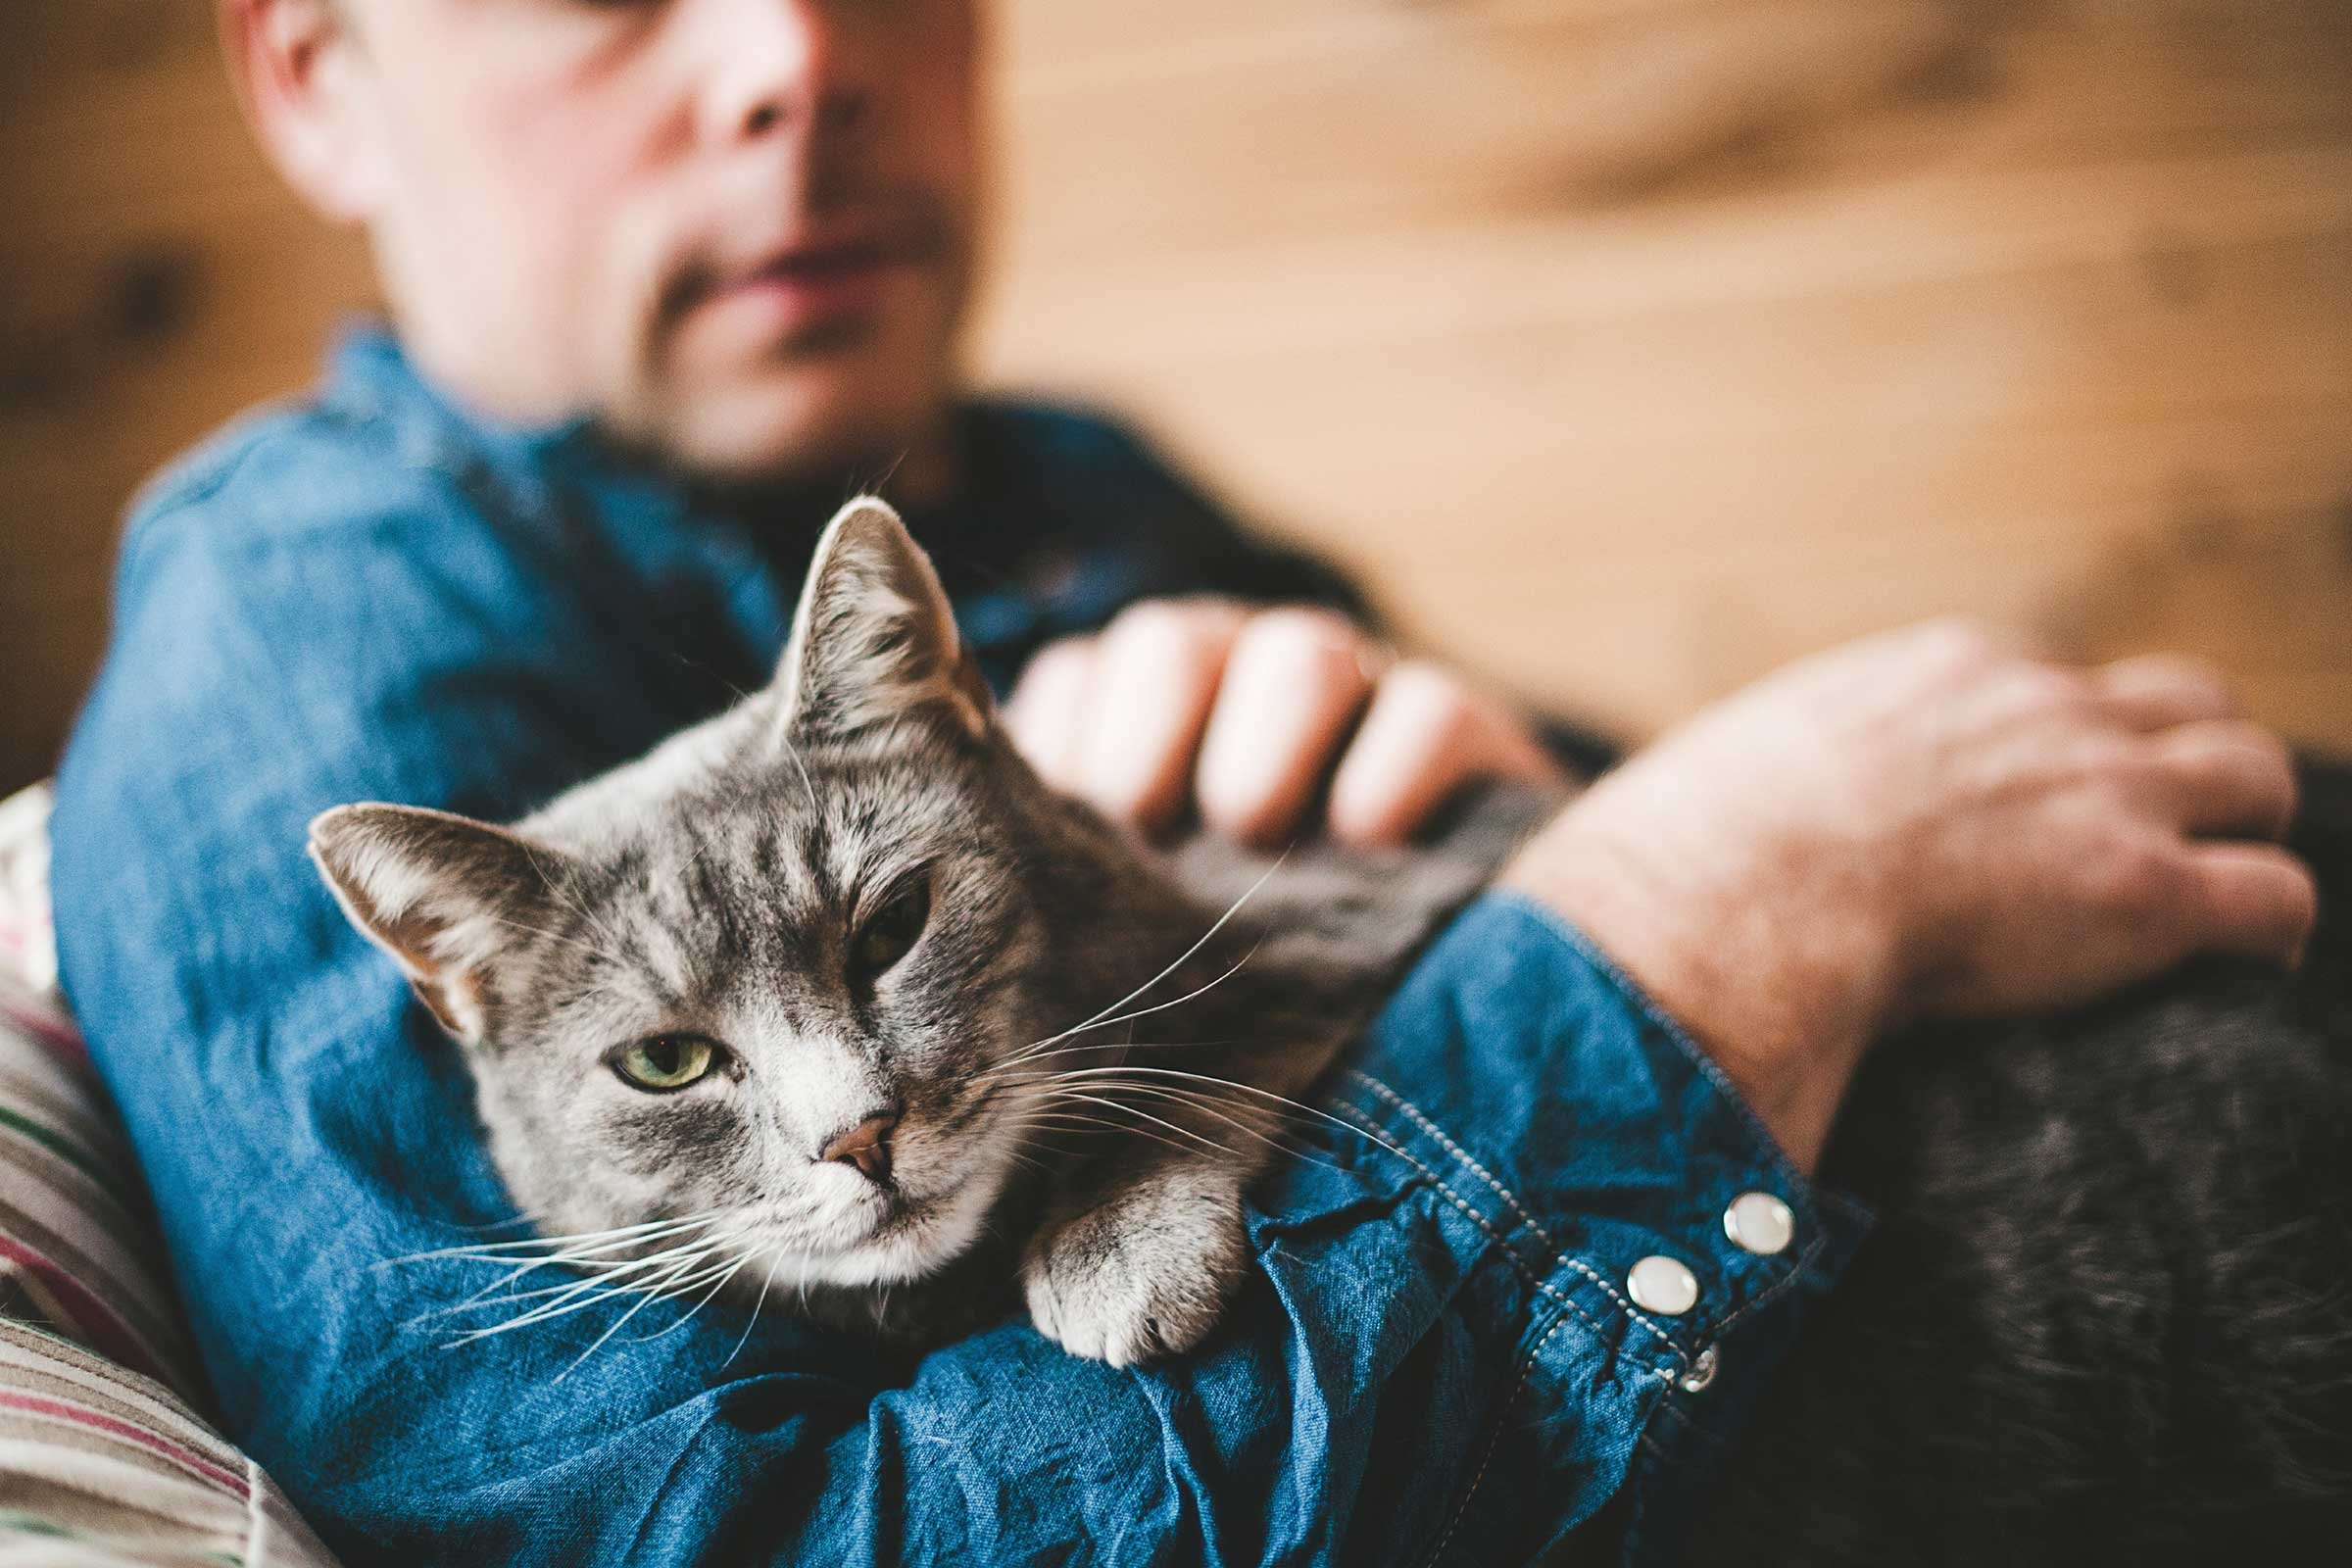 Can cats understand human language